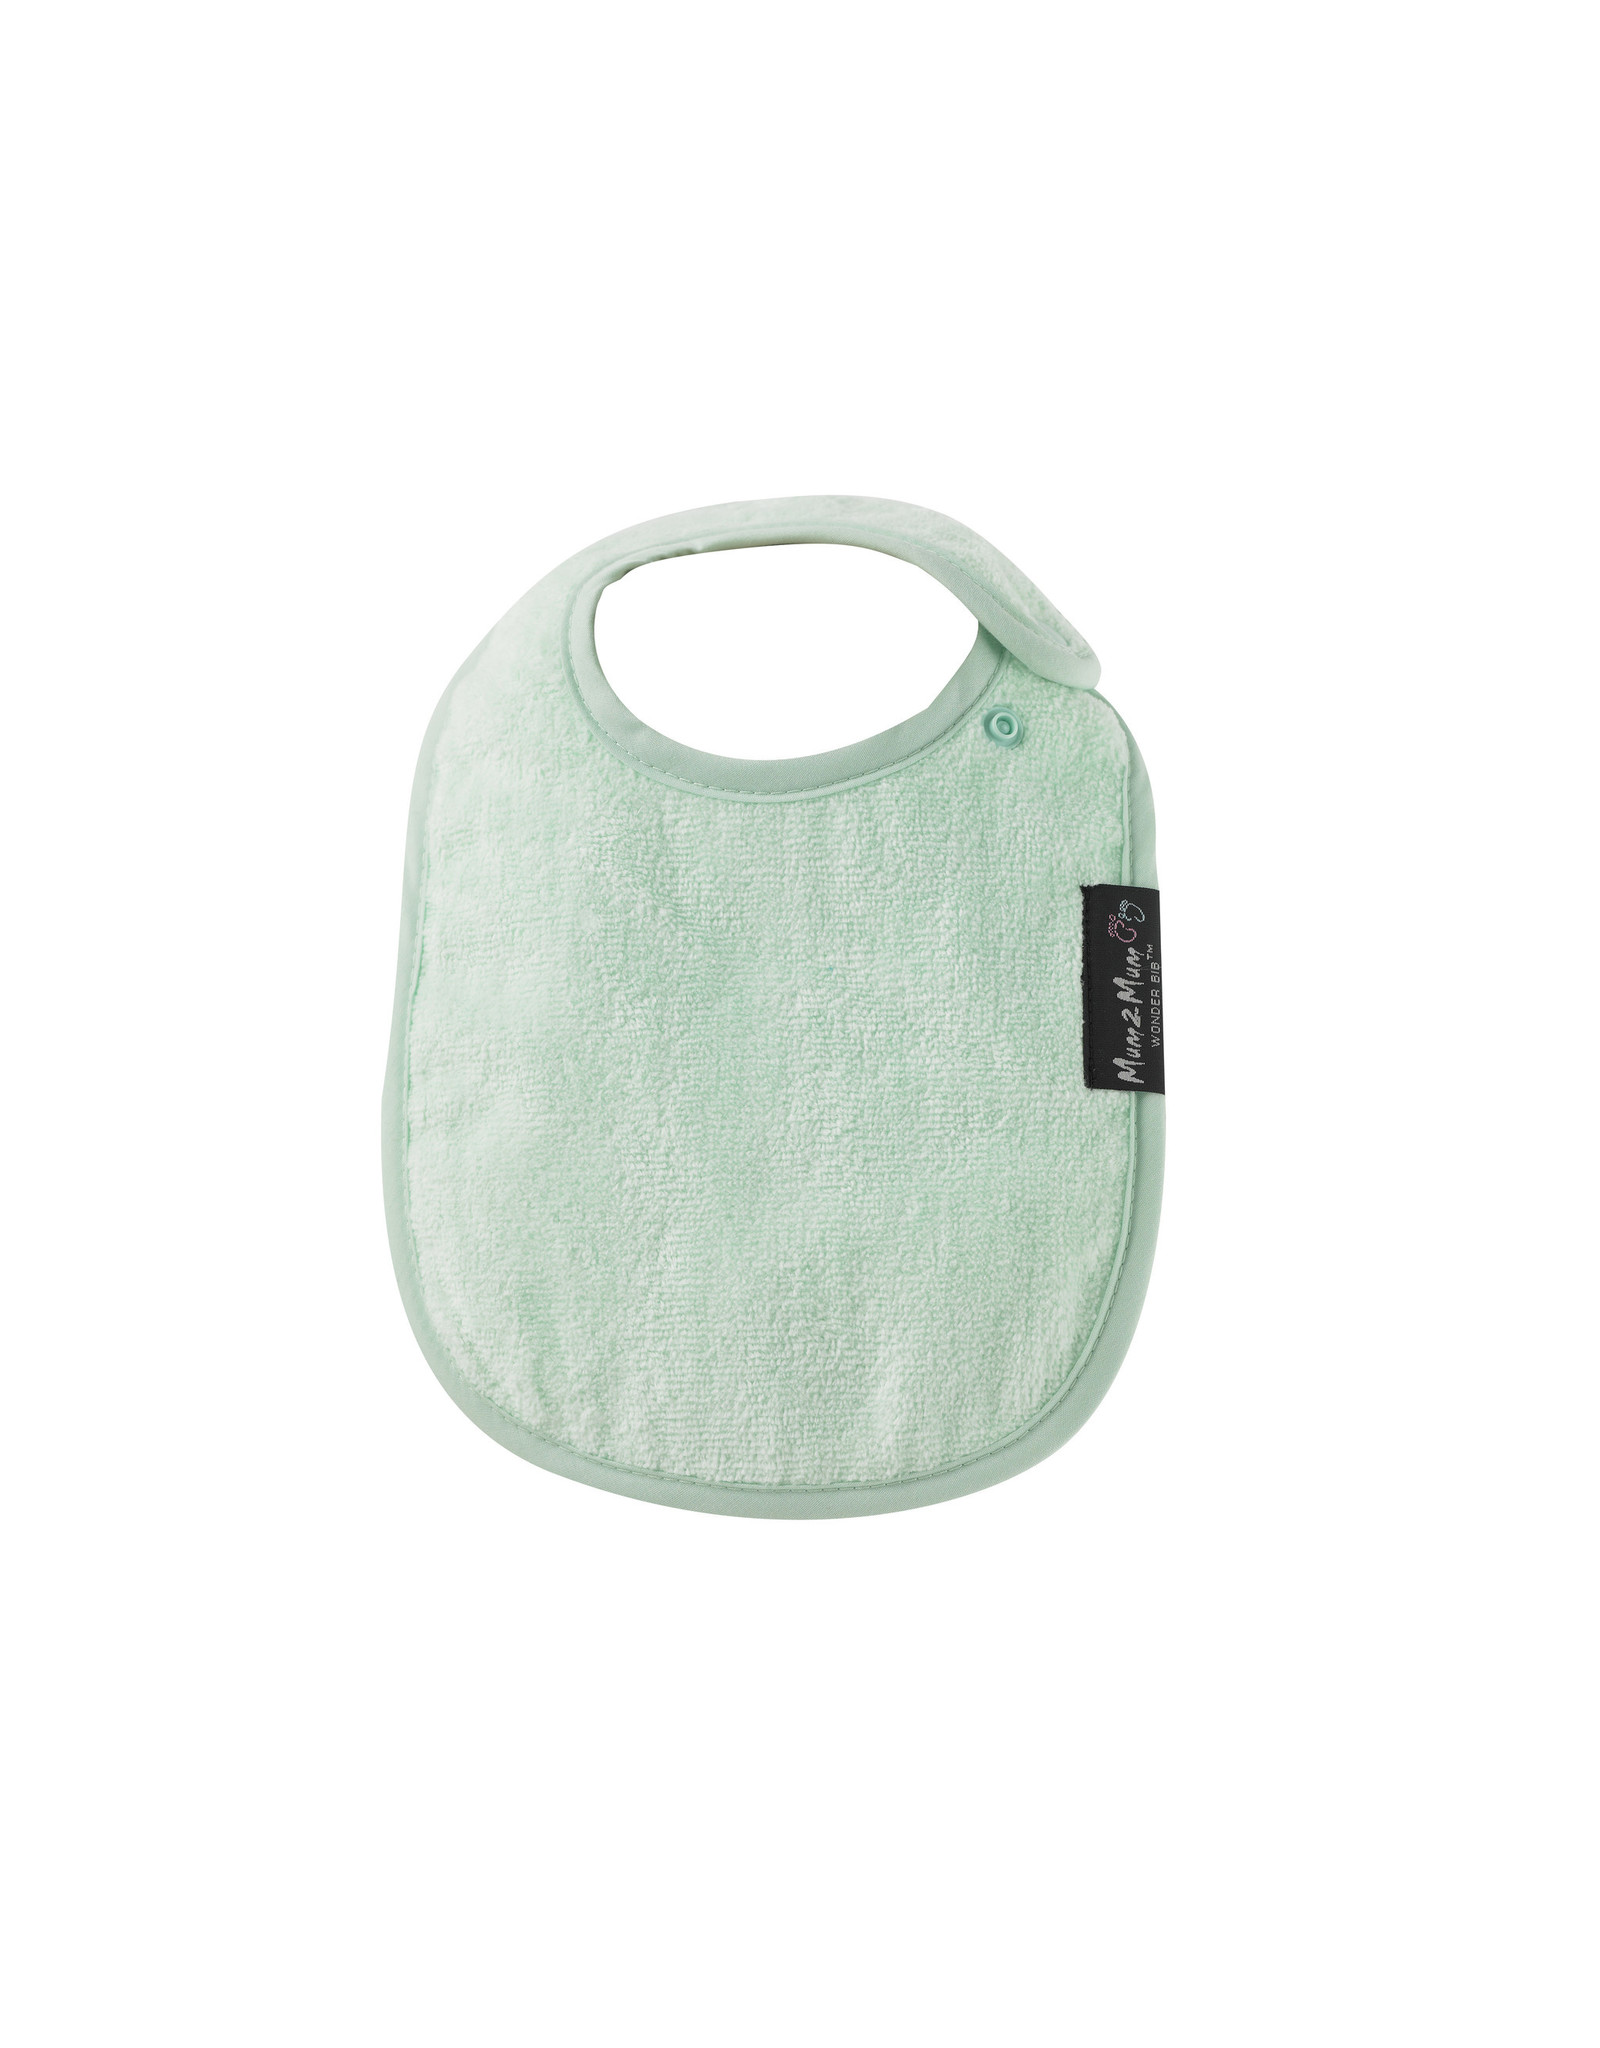 Mum2Mum Mum2Mum Infant Bib Mint